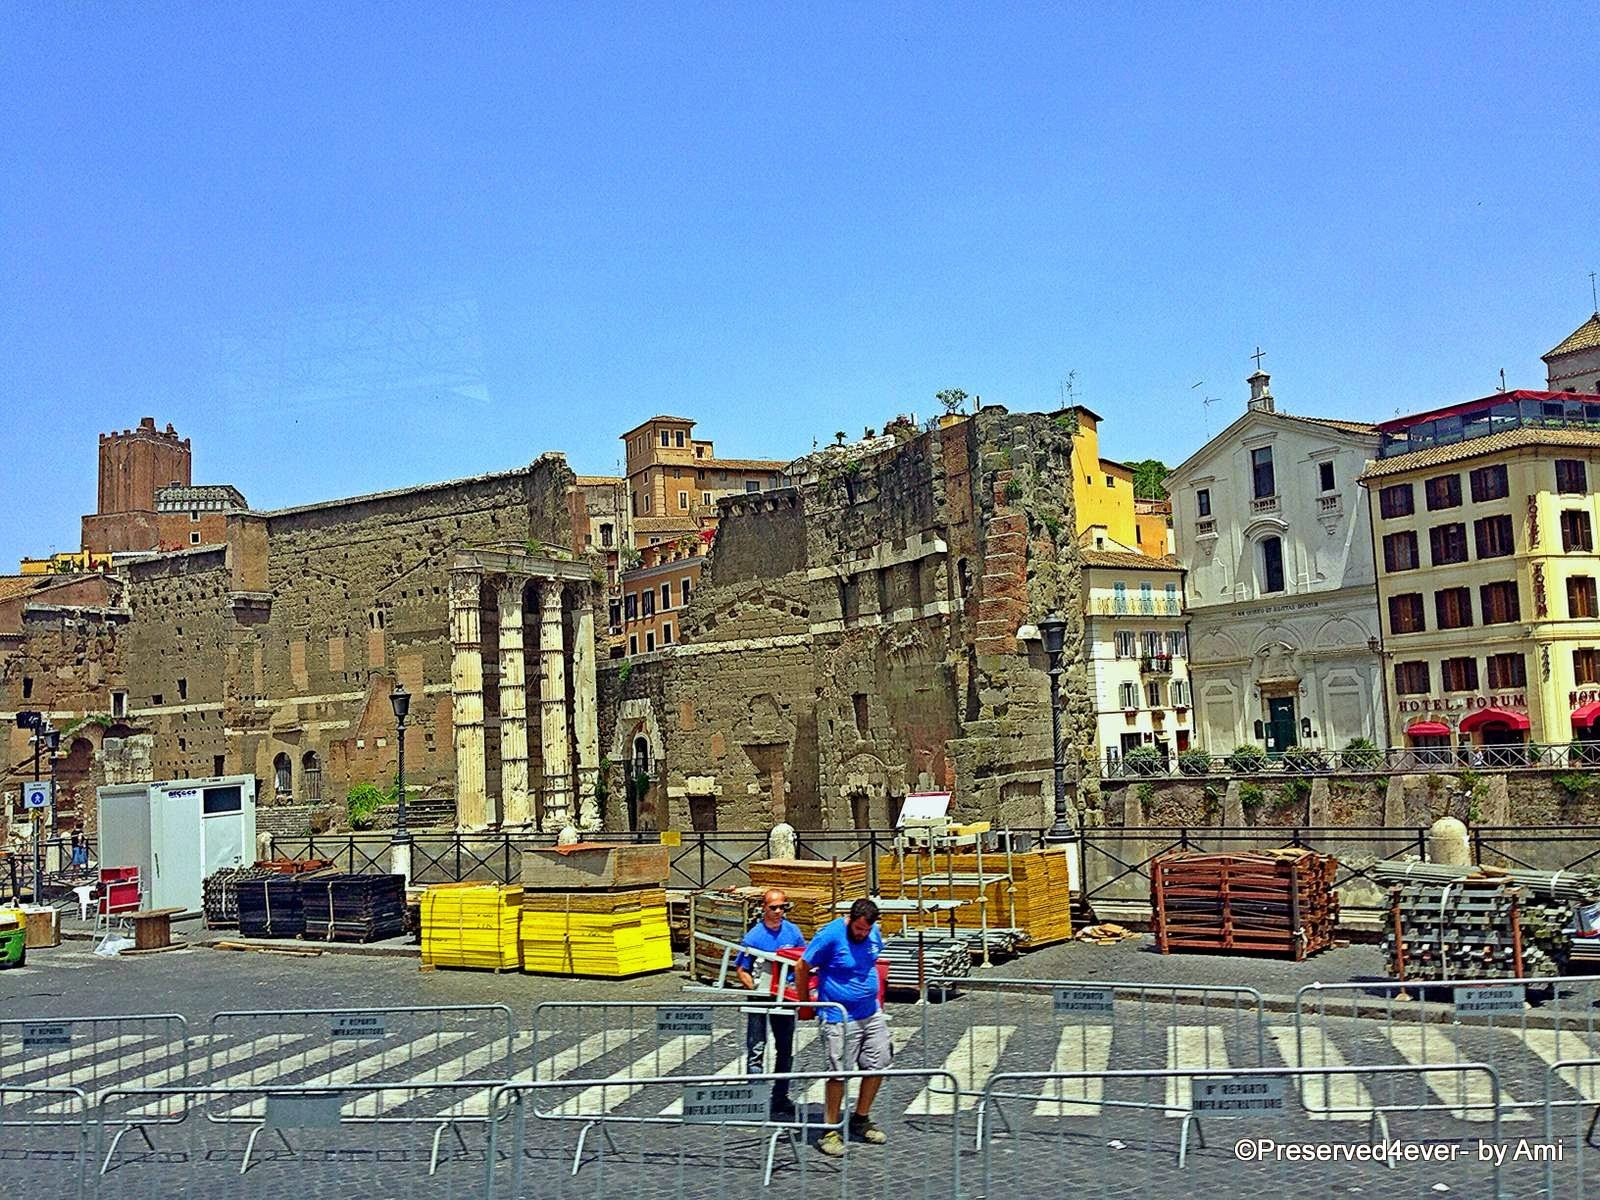 Roman Ruins along the streets of Rome